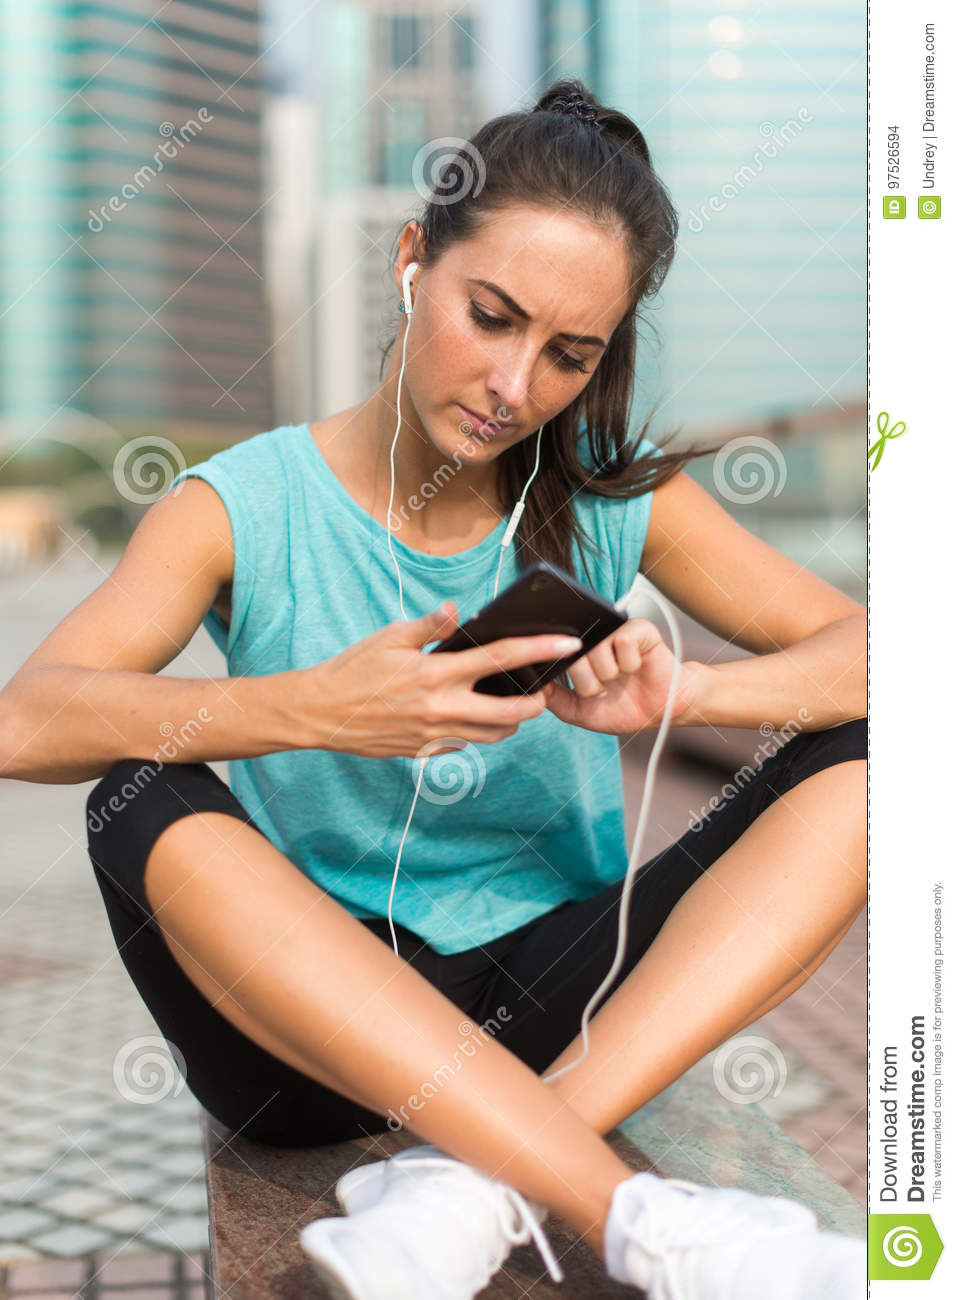 Young sporty woman resting after exercising using her smartphone and listening to music in earphones. Athlete runner in